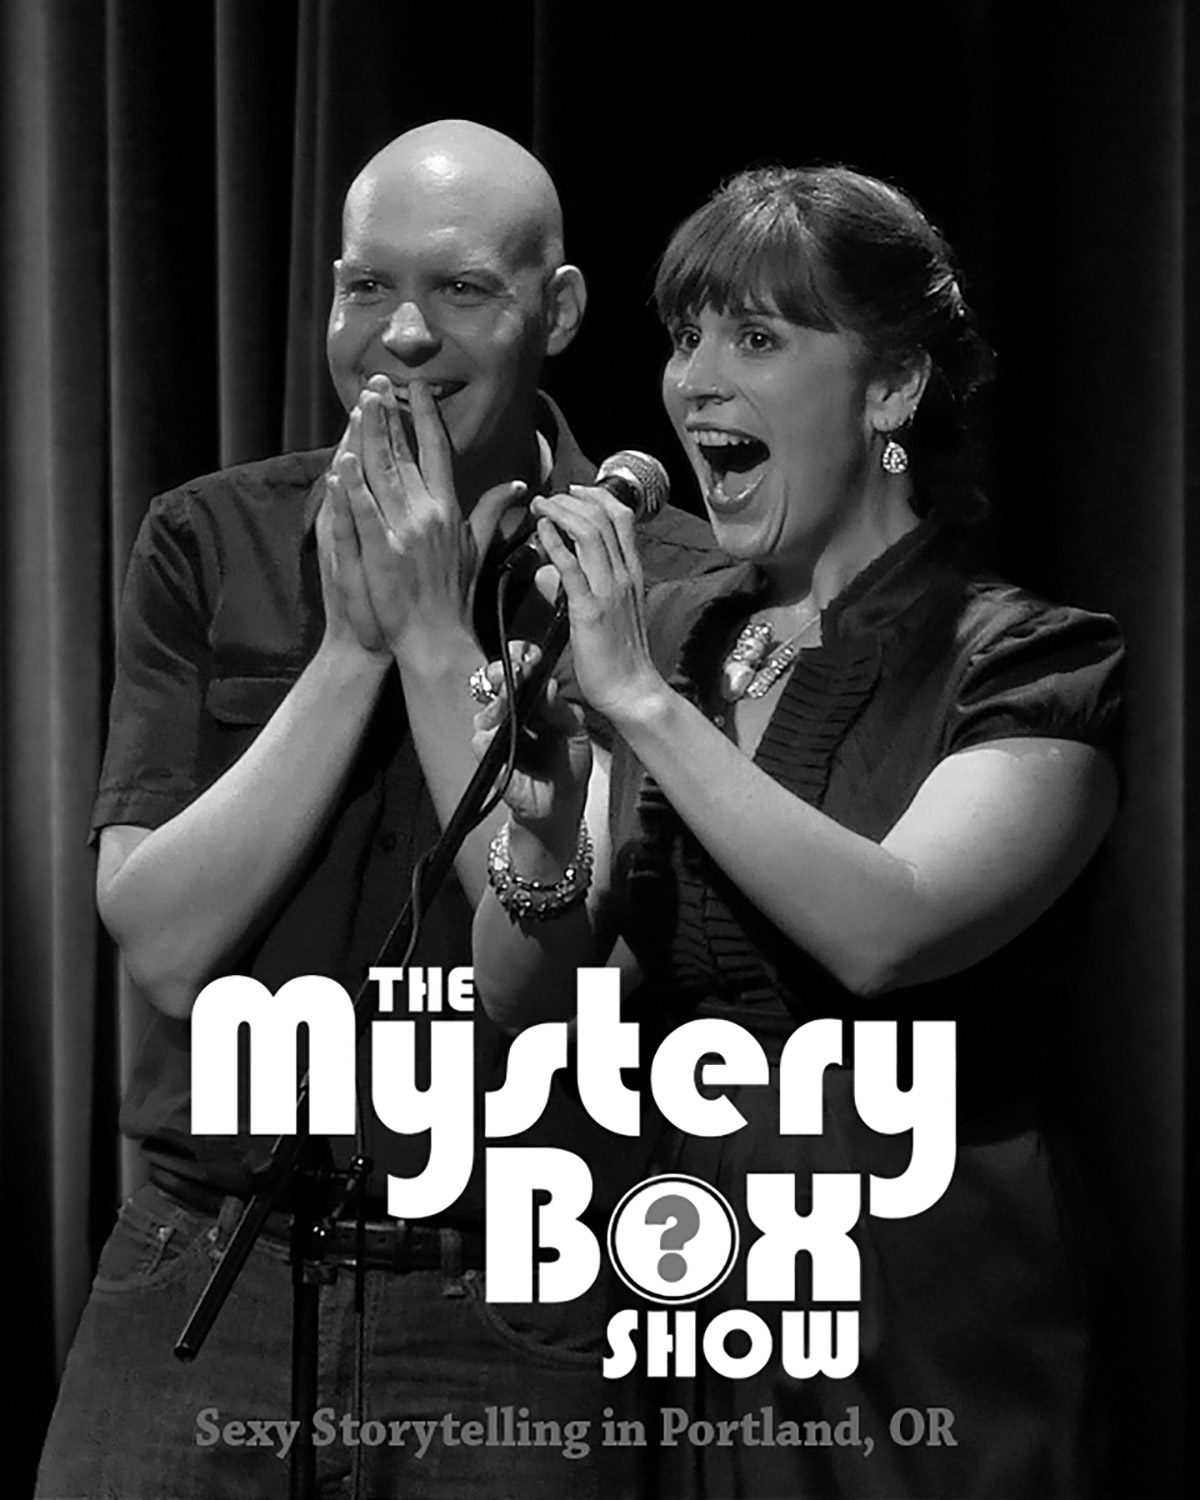 Ellen Fondiler | An Interview With The Mystery Box Show